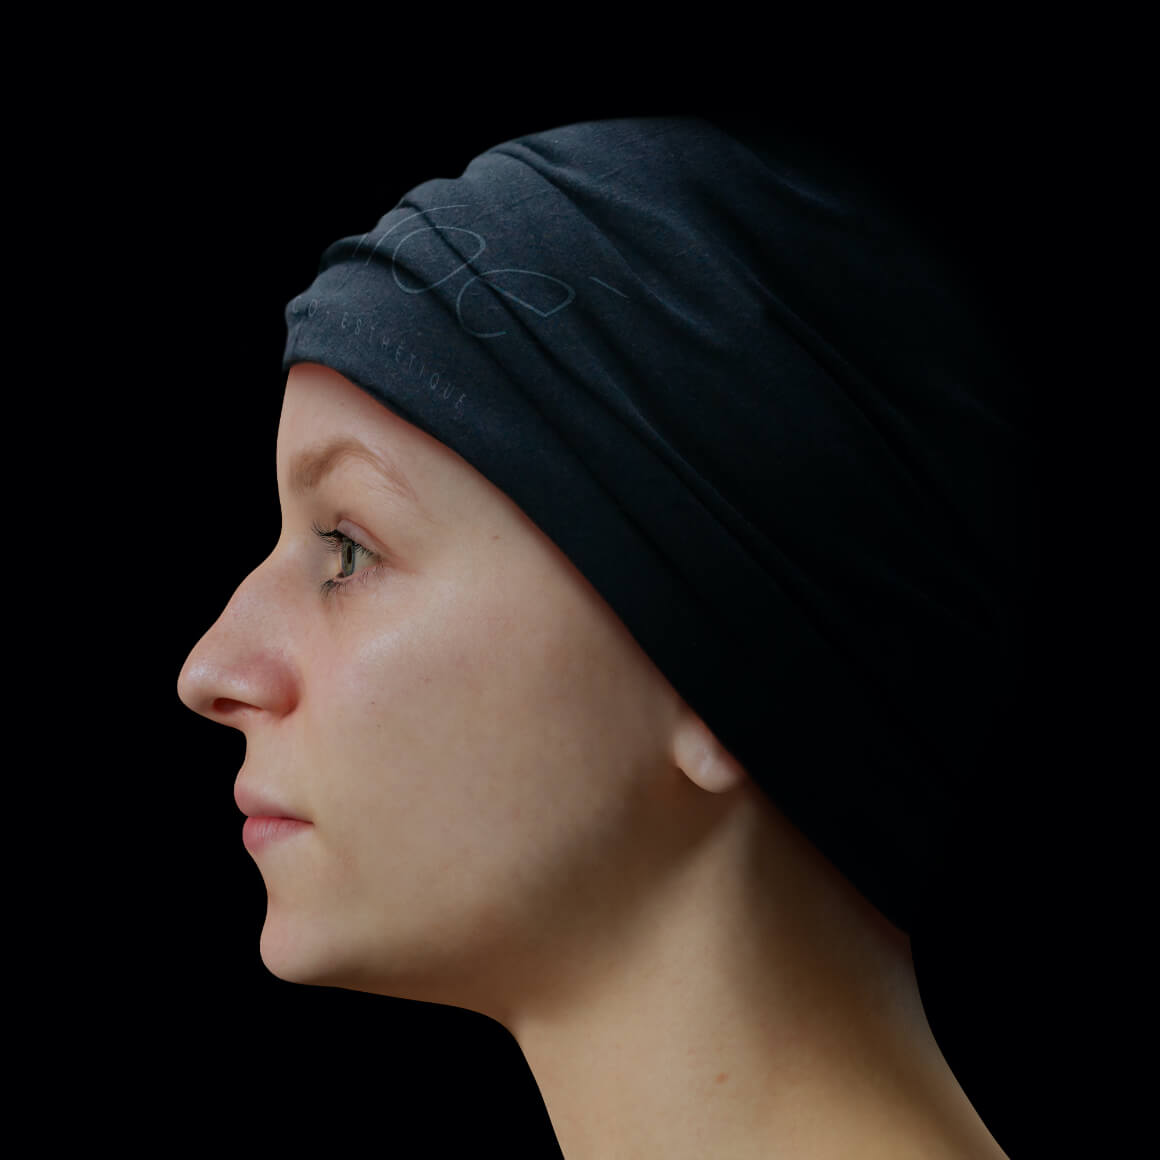 Female patient at Clinique Chloé with a poorly defined jawline, side view